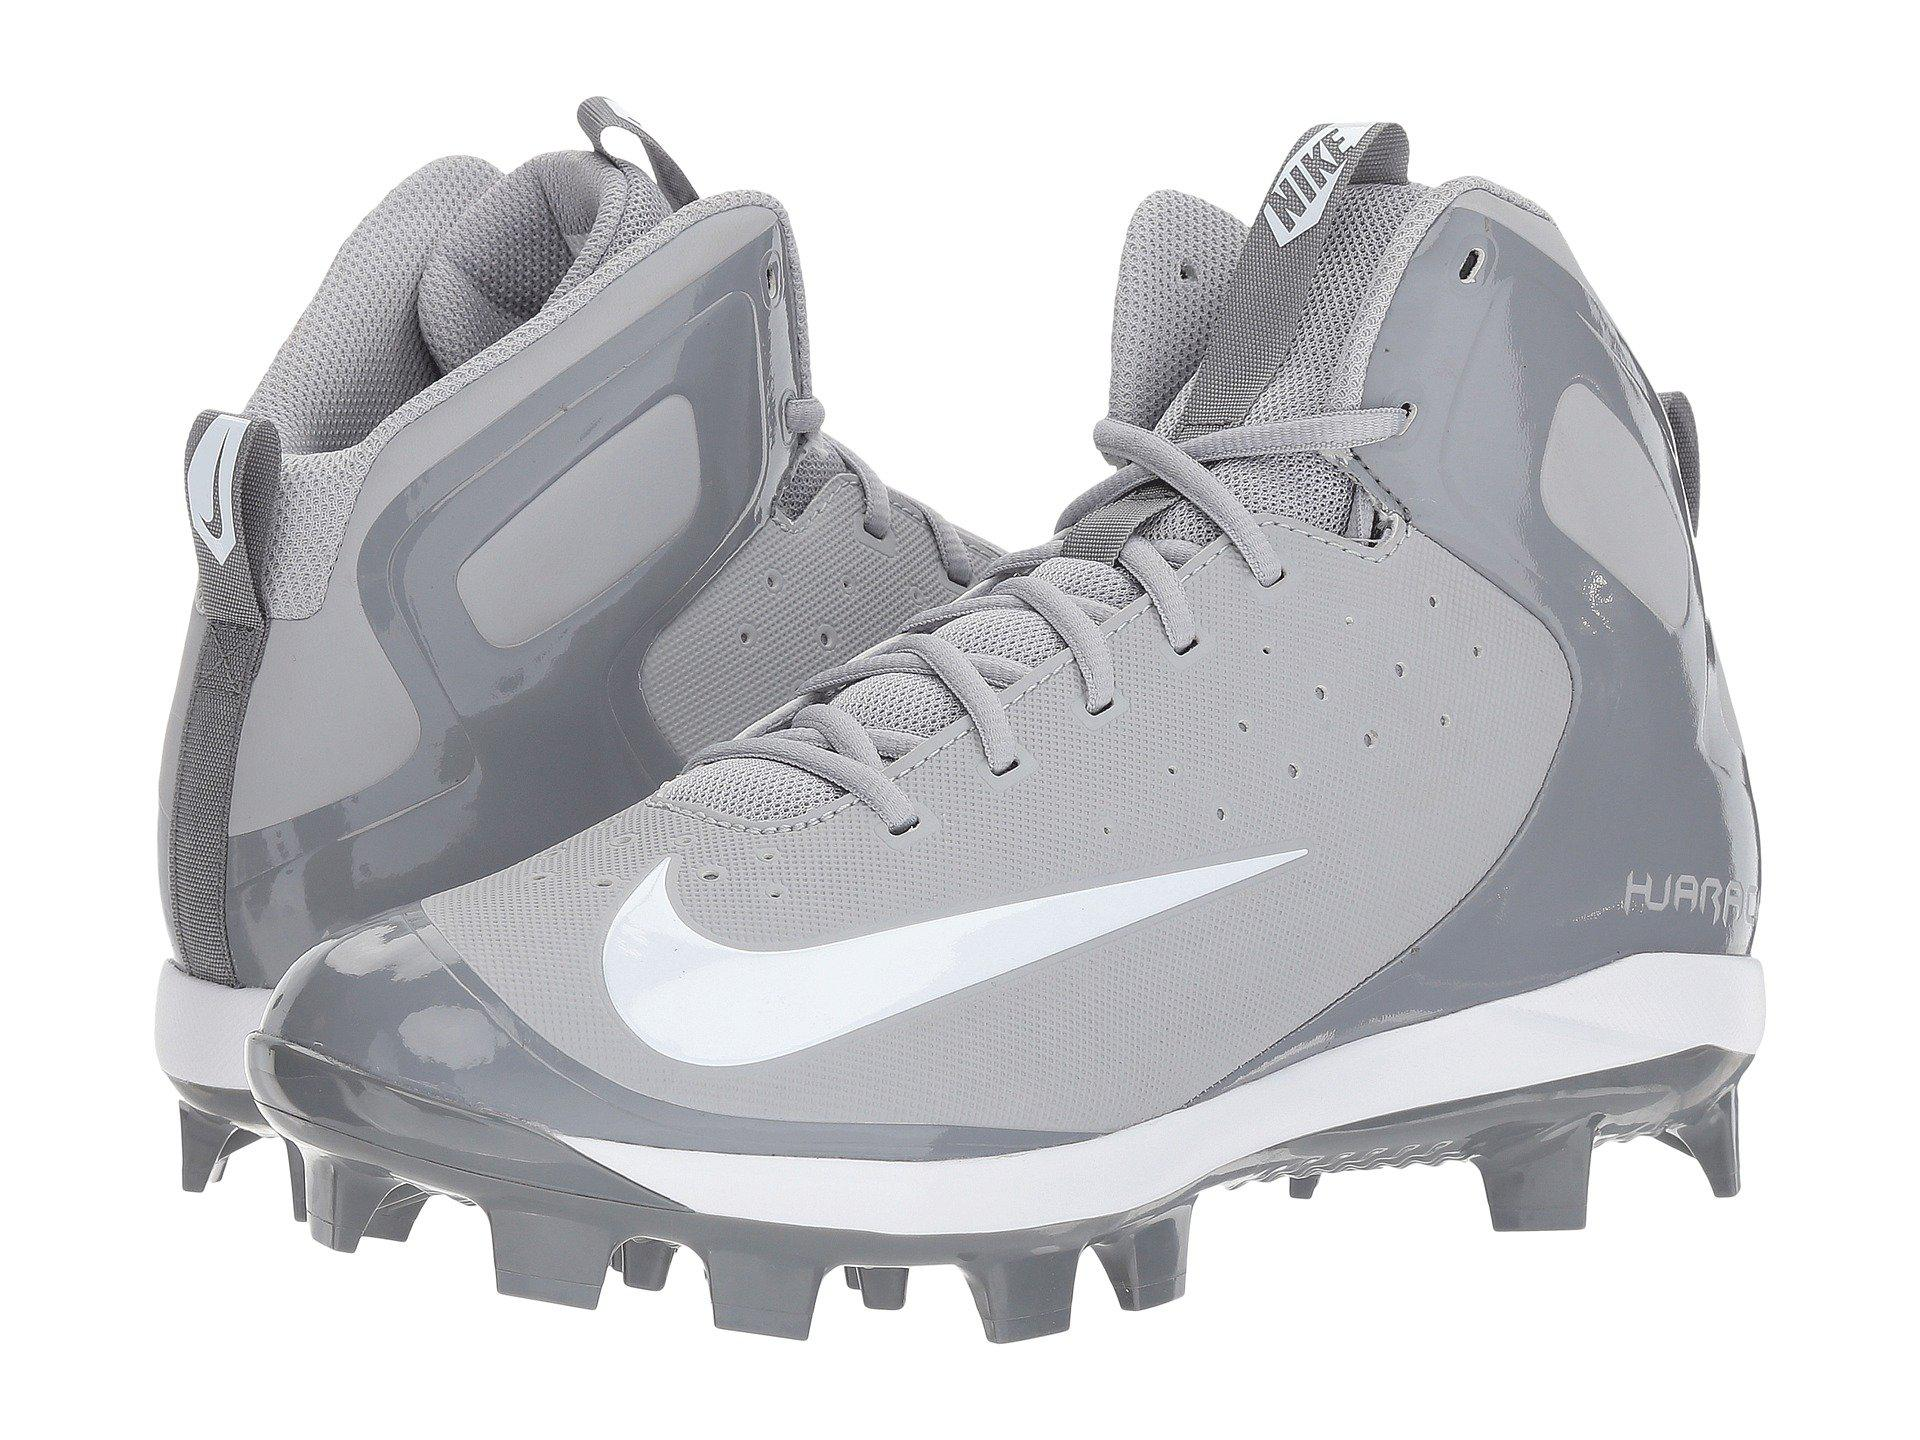 dad6fdf554d0 Lyst - Nike Alpha Huarache Pro Mid Mcs in Gray for Men